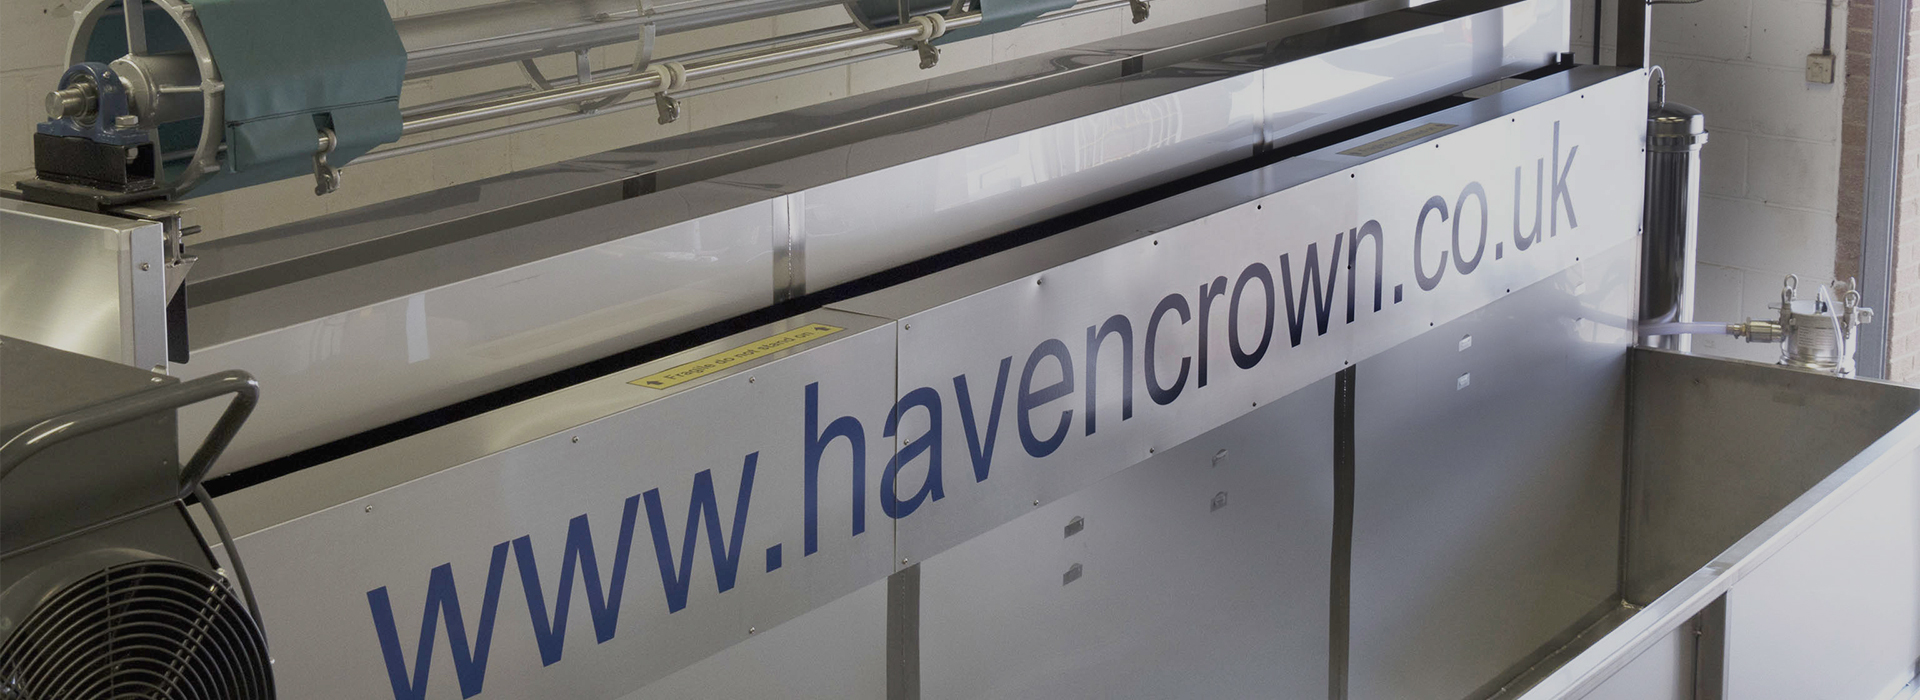 havencrown-slideshow-2.jpg